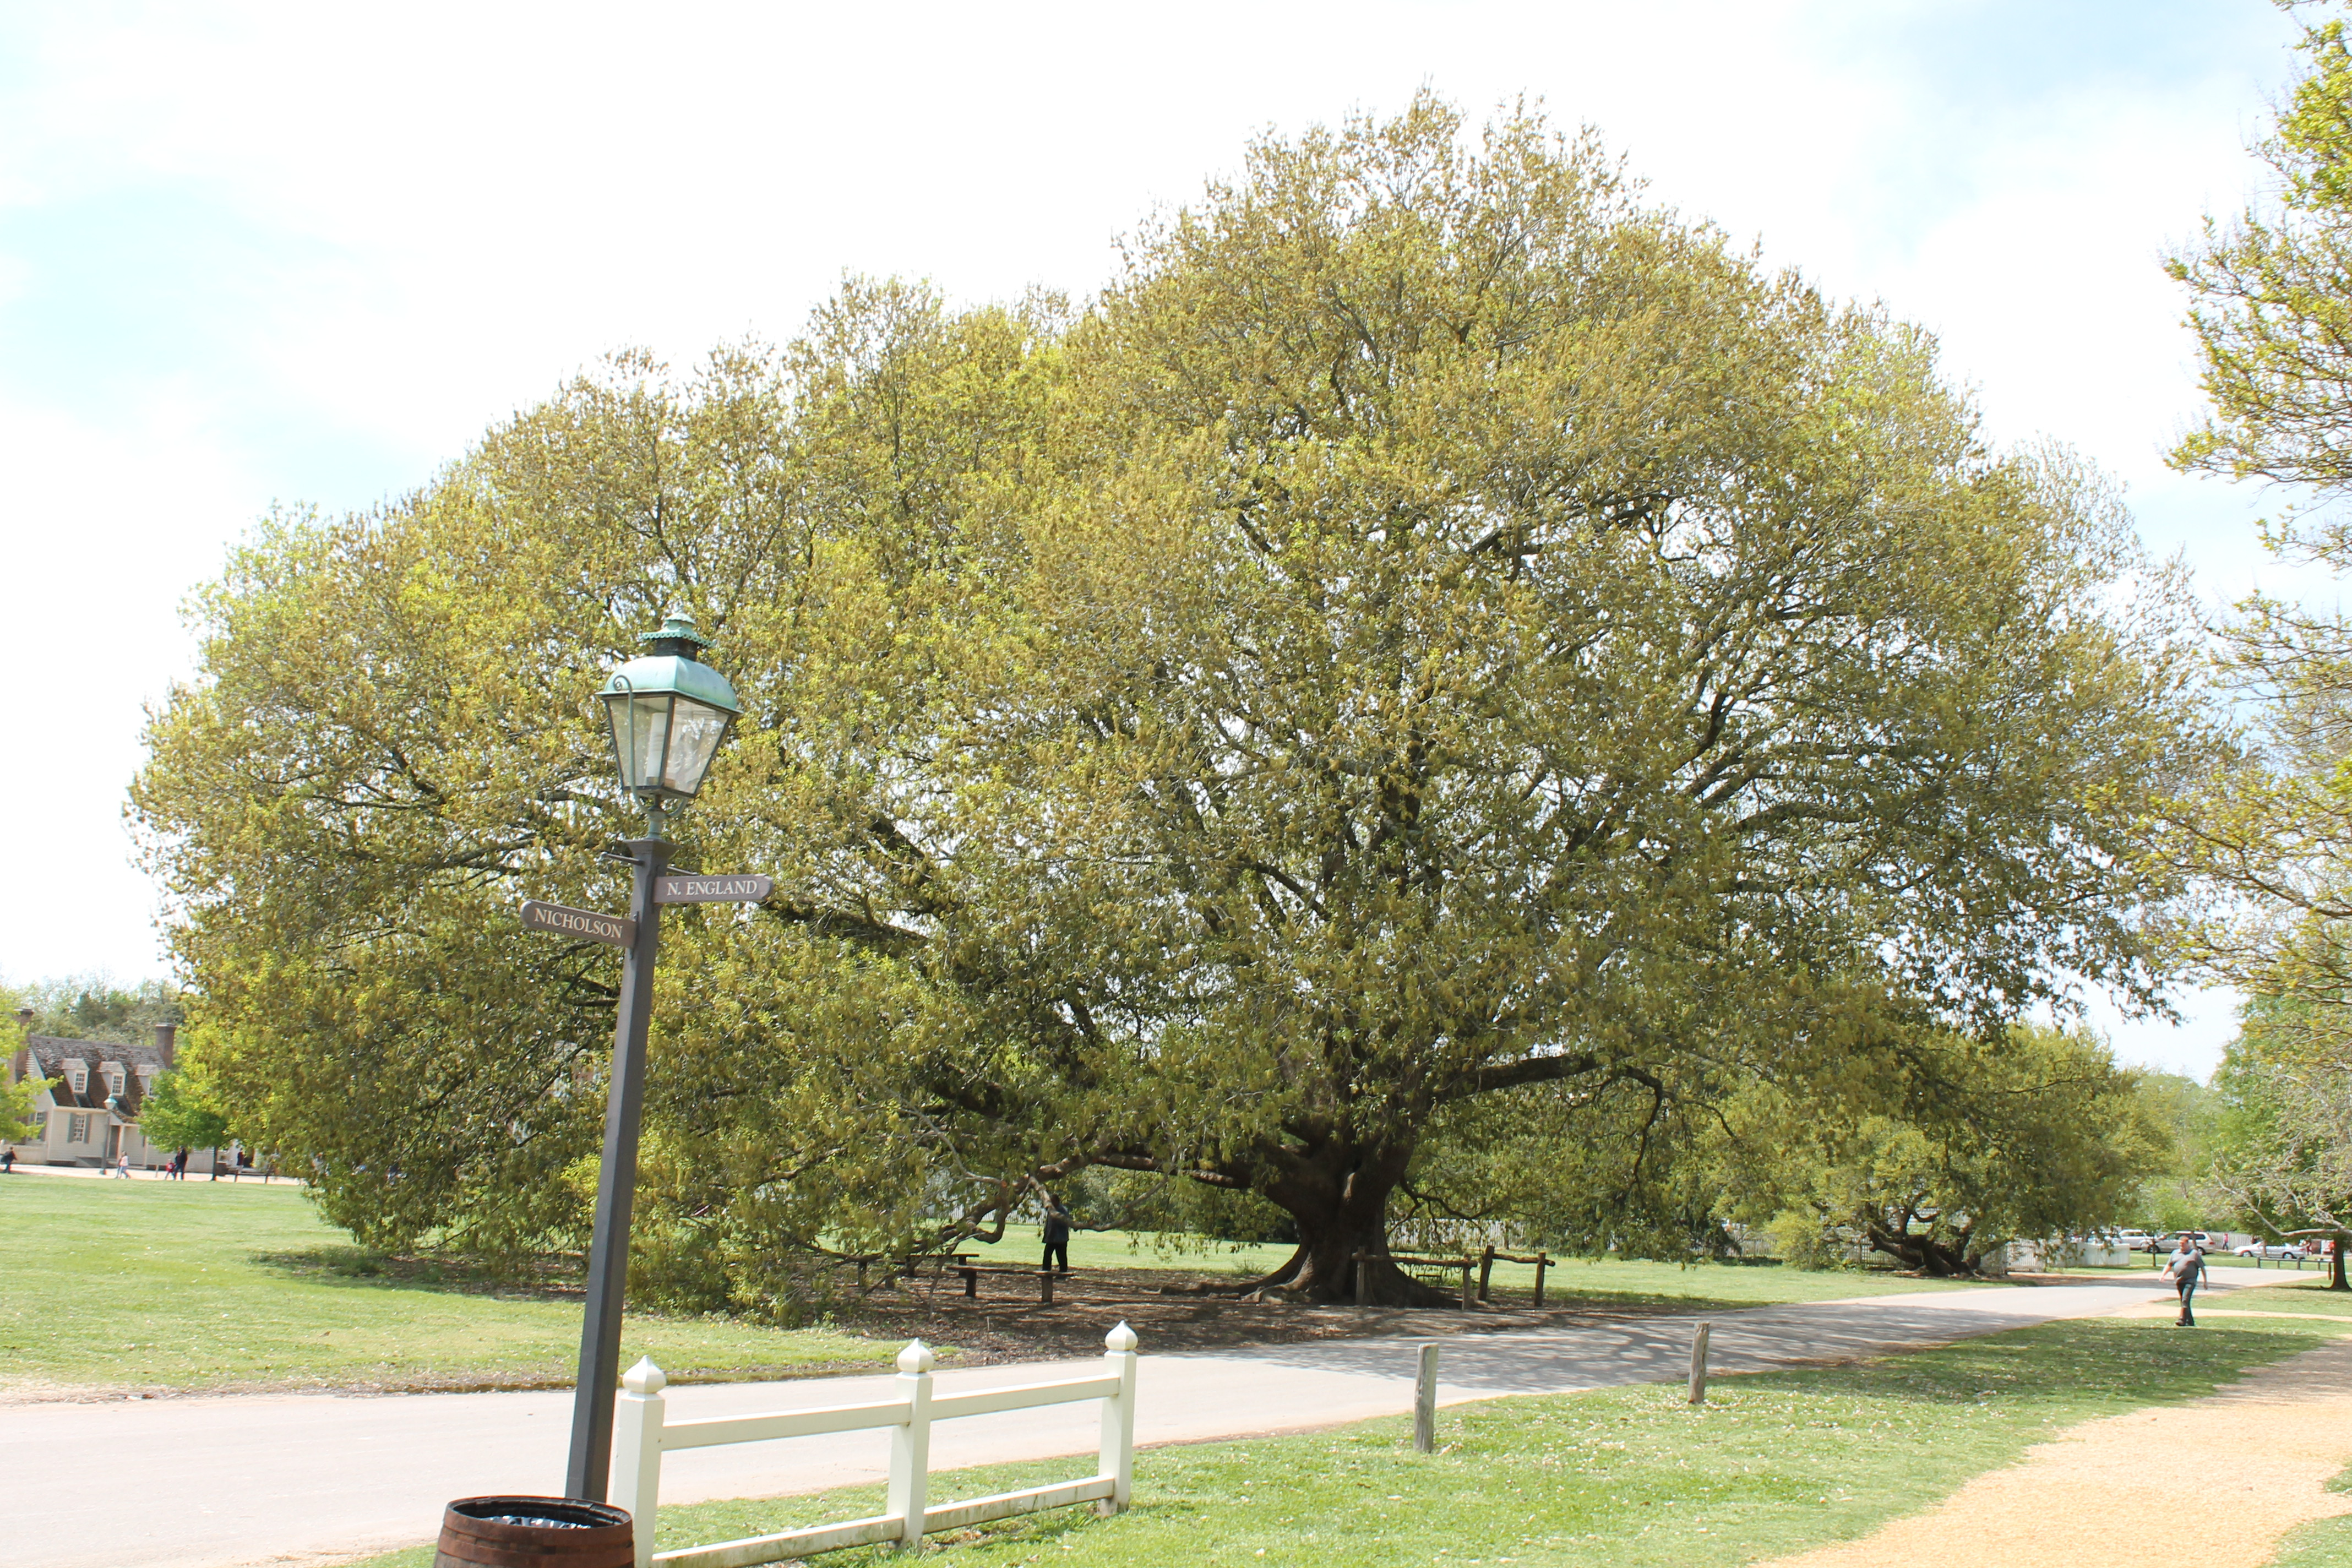 Largest Compton Oak seen at Colonial Williamsburg, VA